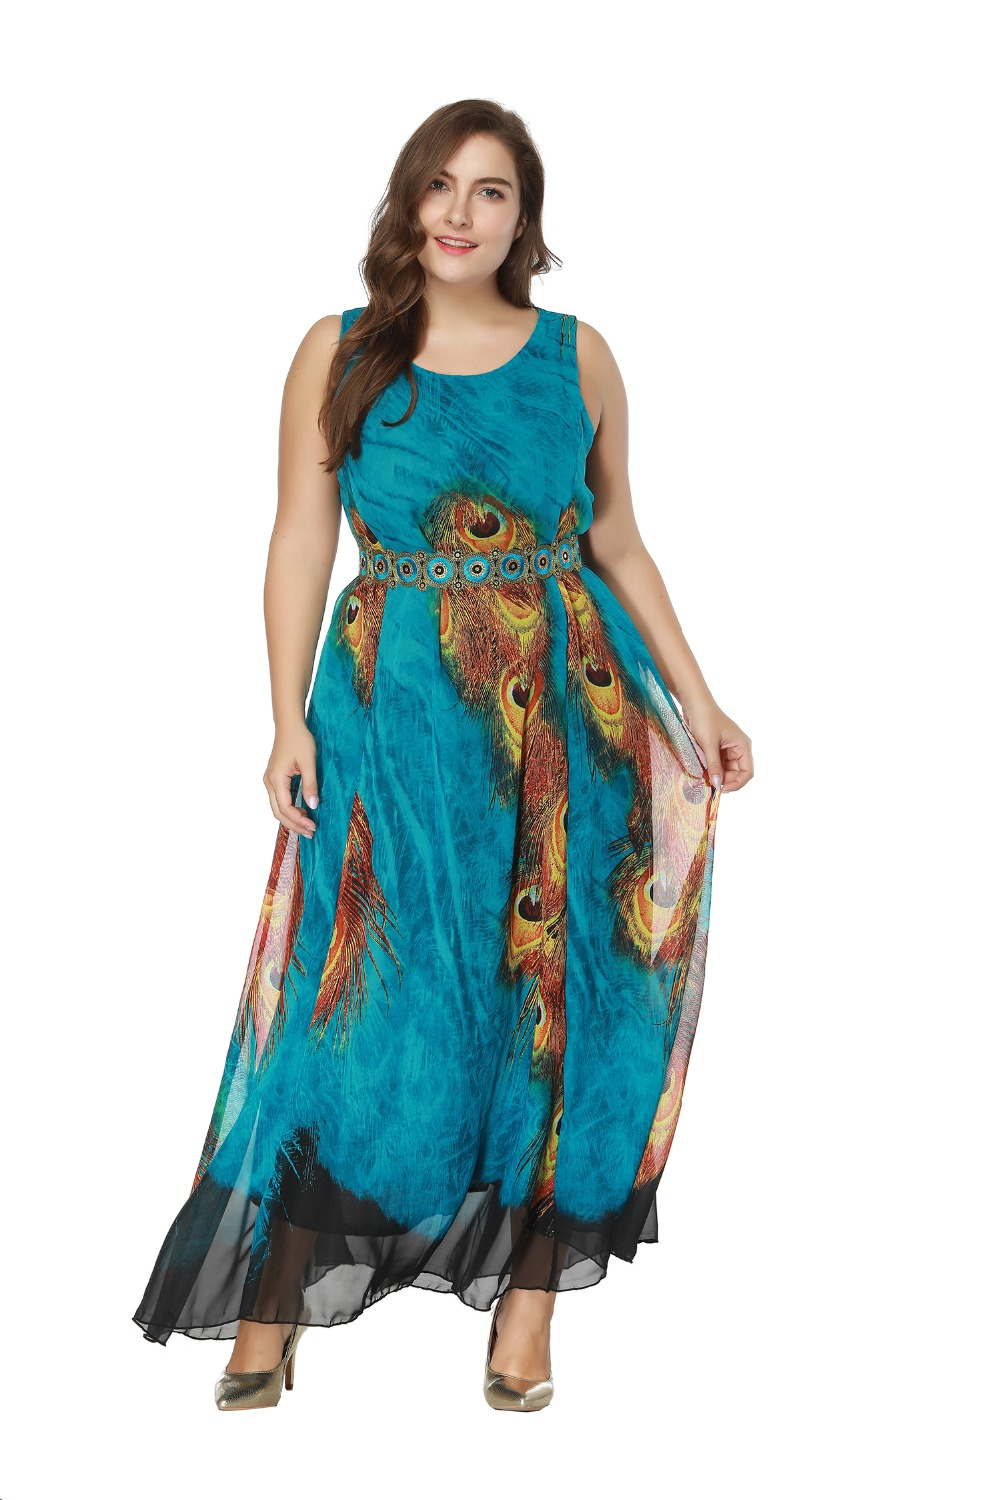 new arrival summer long <font><b>dress</b></font> <font><b>plus</b></font> <font><b>size</b></font> 7XL <font><b>8XL</b></font> Chiffon Maxi <font><b>Dress</b></font> blue color printed beach <font><b>dress</b></font> sundress image